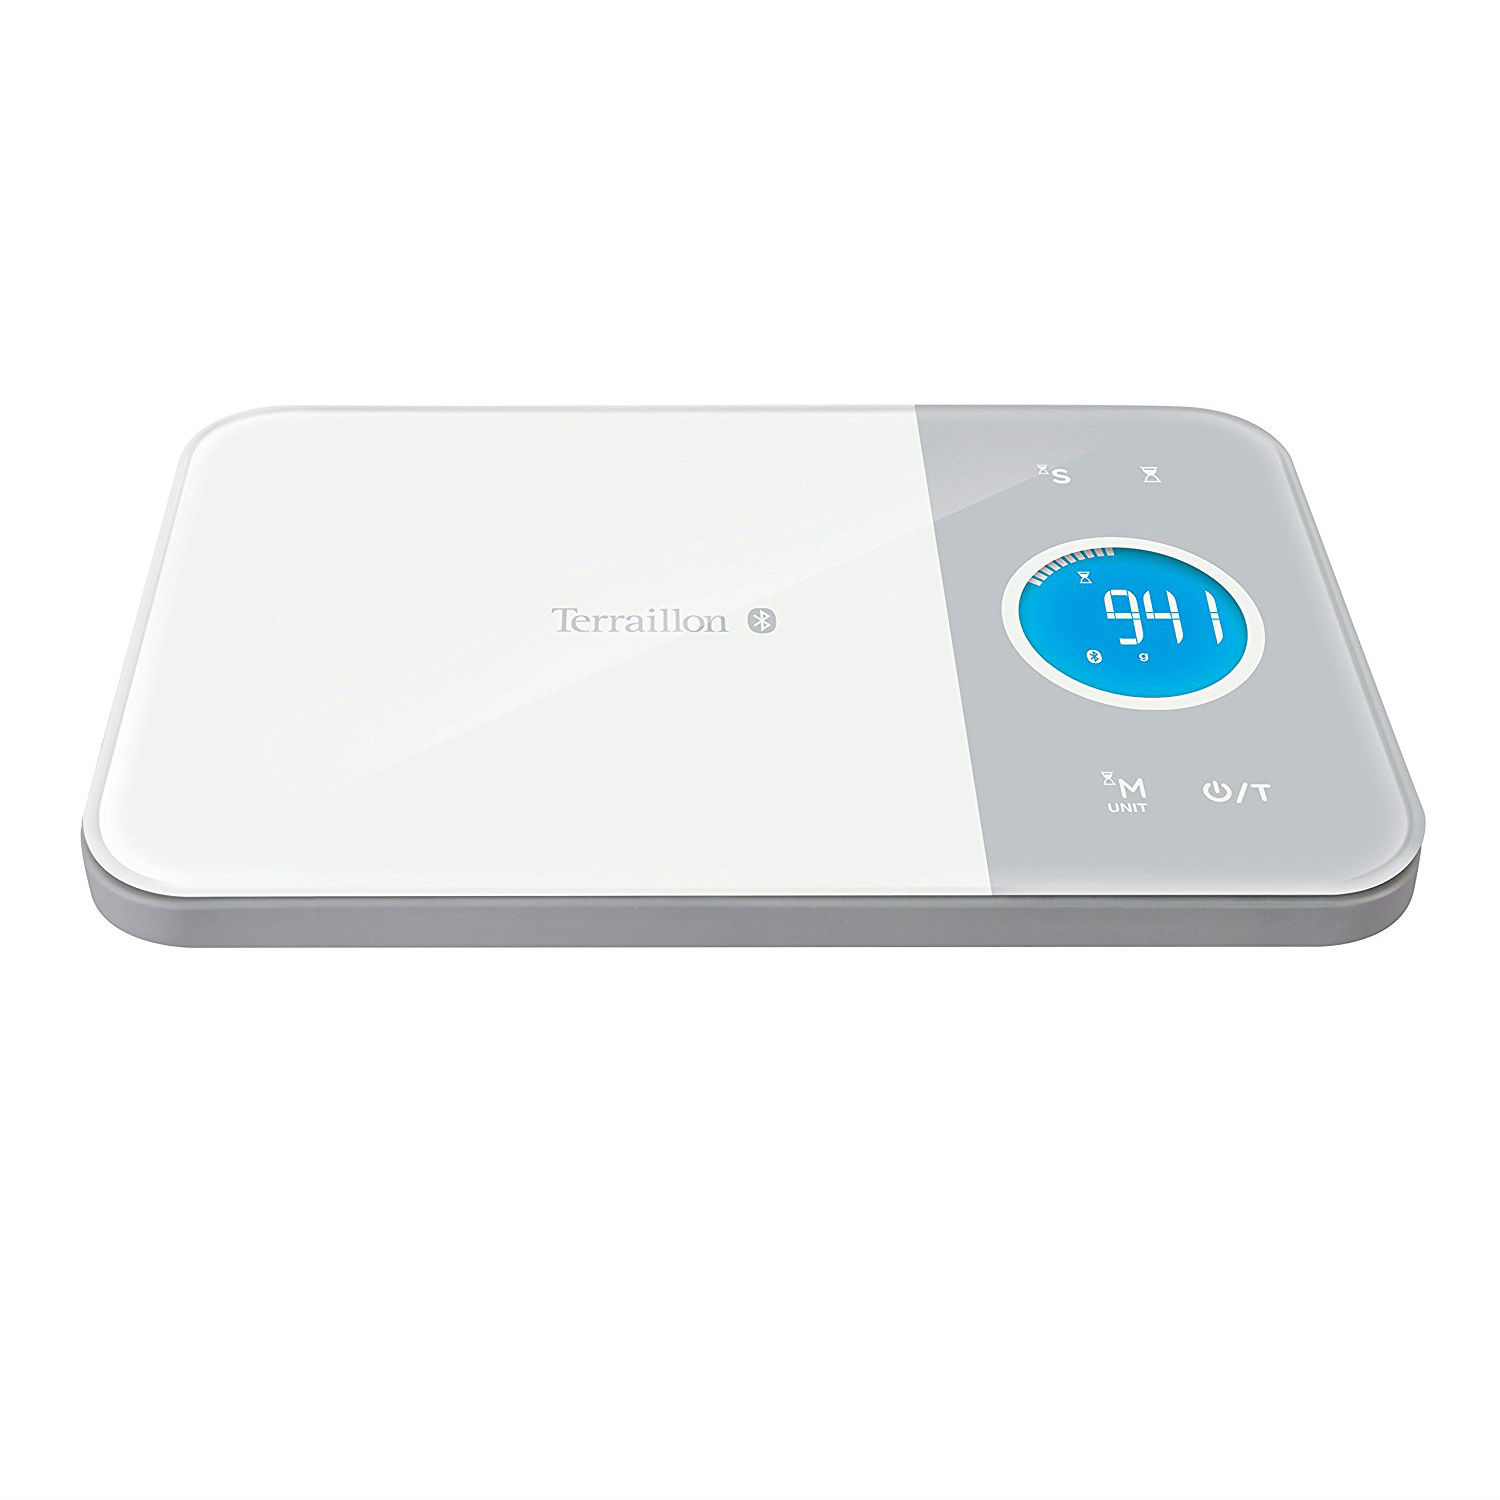 Terraillon Nutritab Connected Nutricional Kitchen Scale (white)